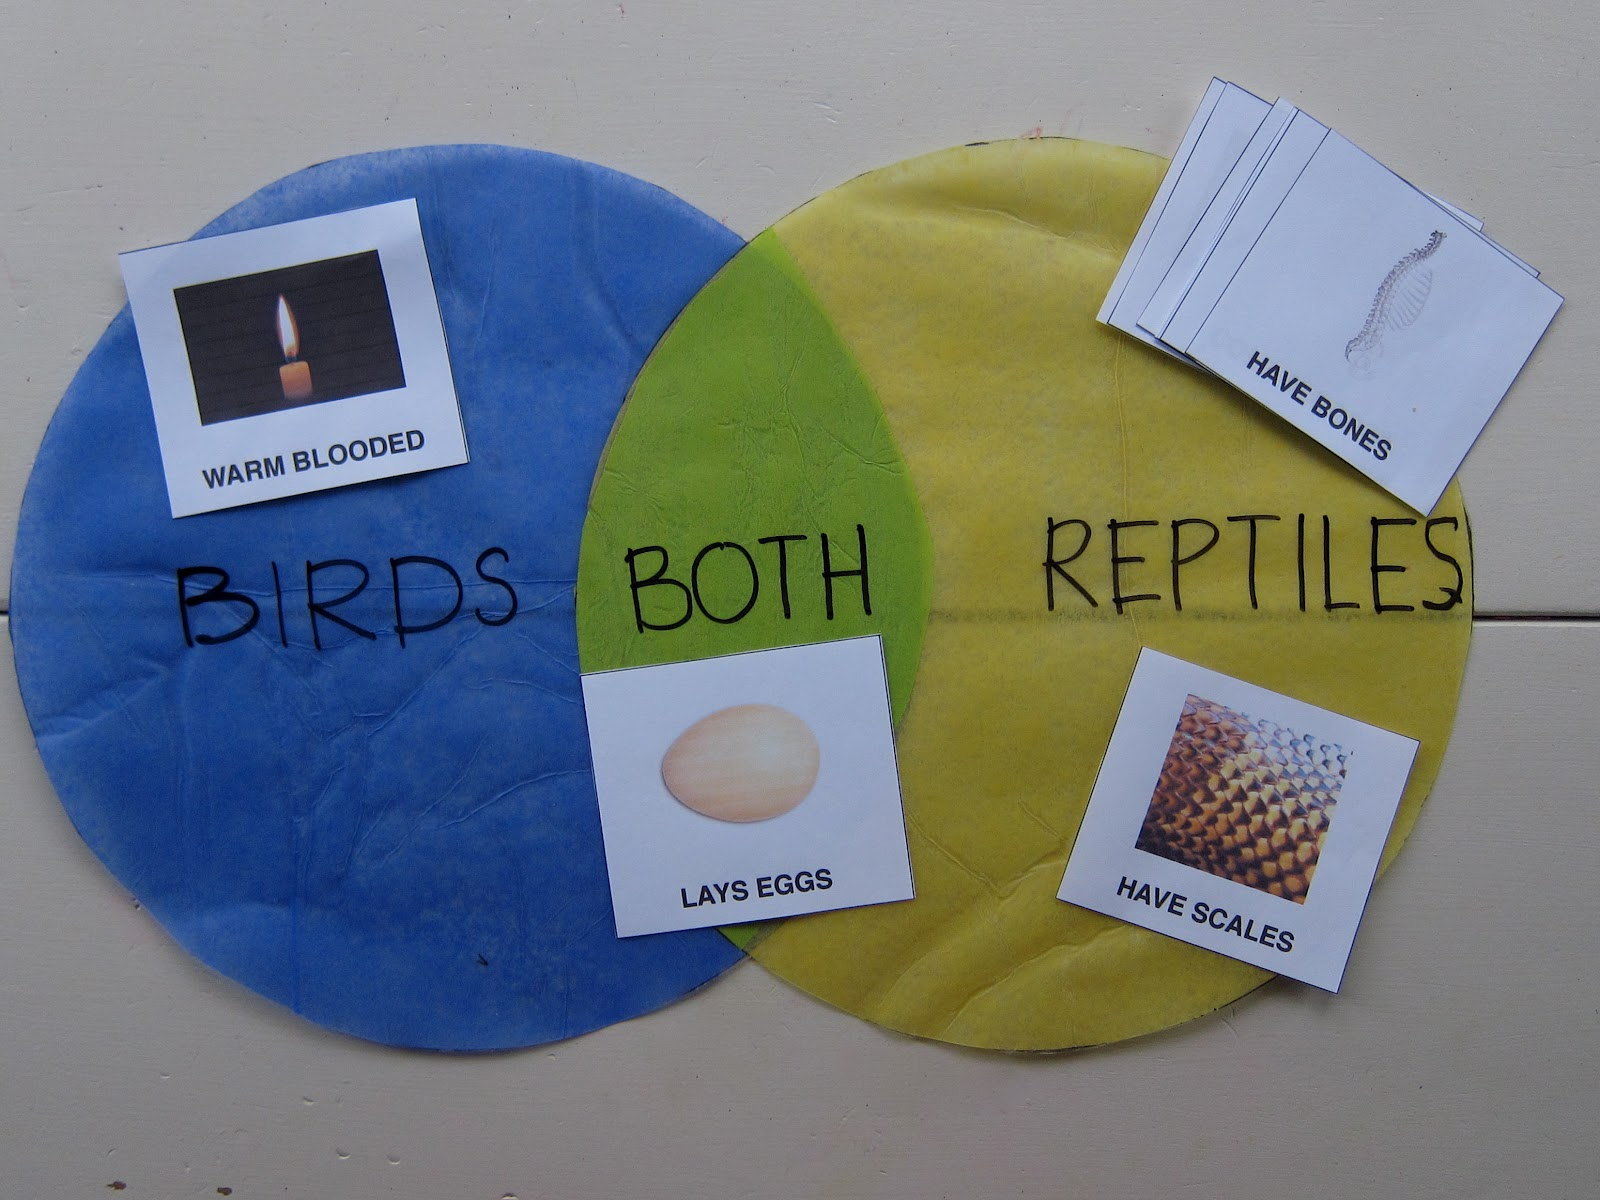 medium resolution of bird reptile venn diagram skills practiced classification scientific knowledge comparing i have made the cards pdf available here